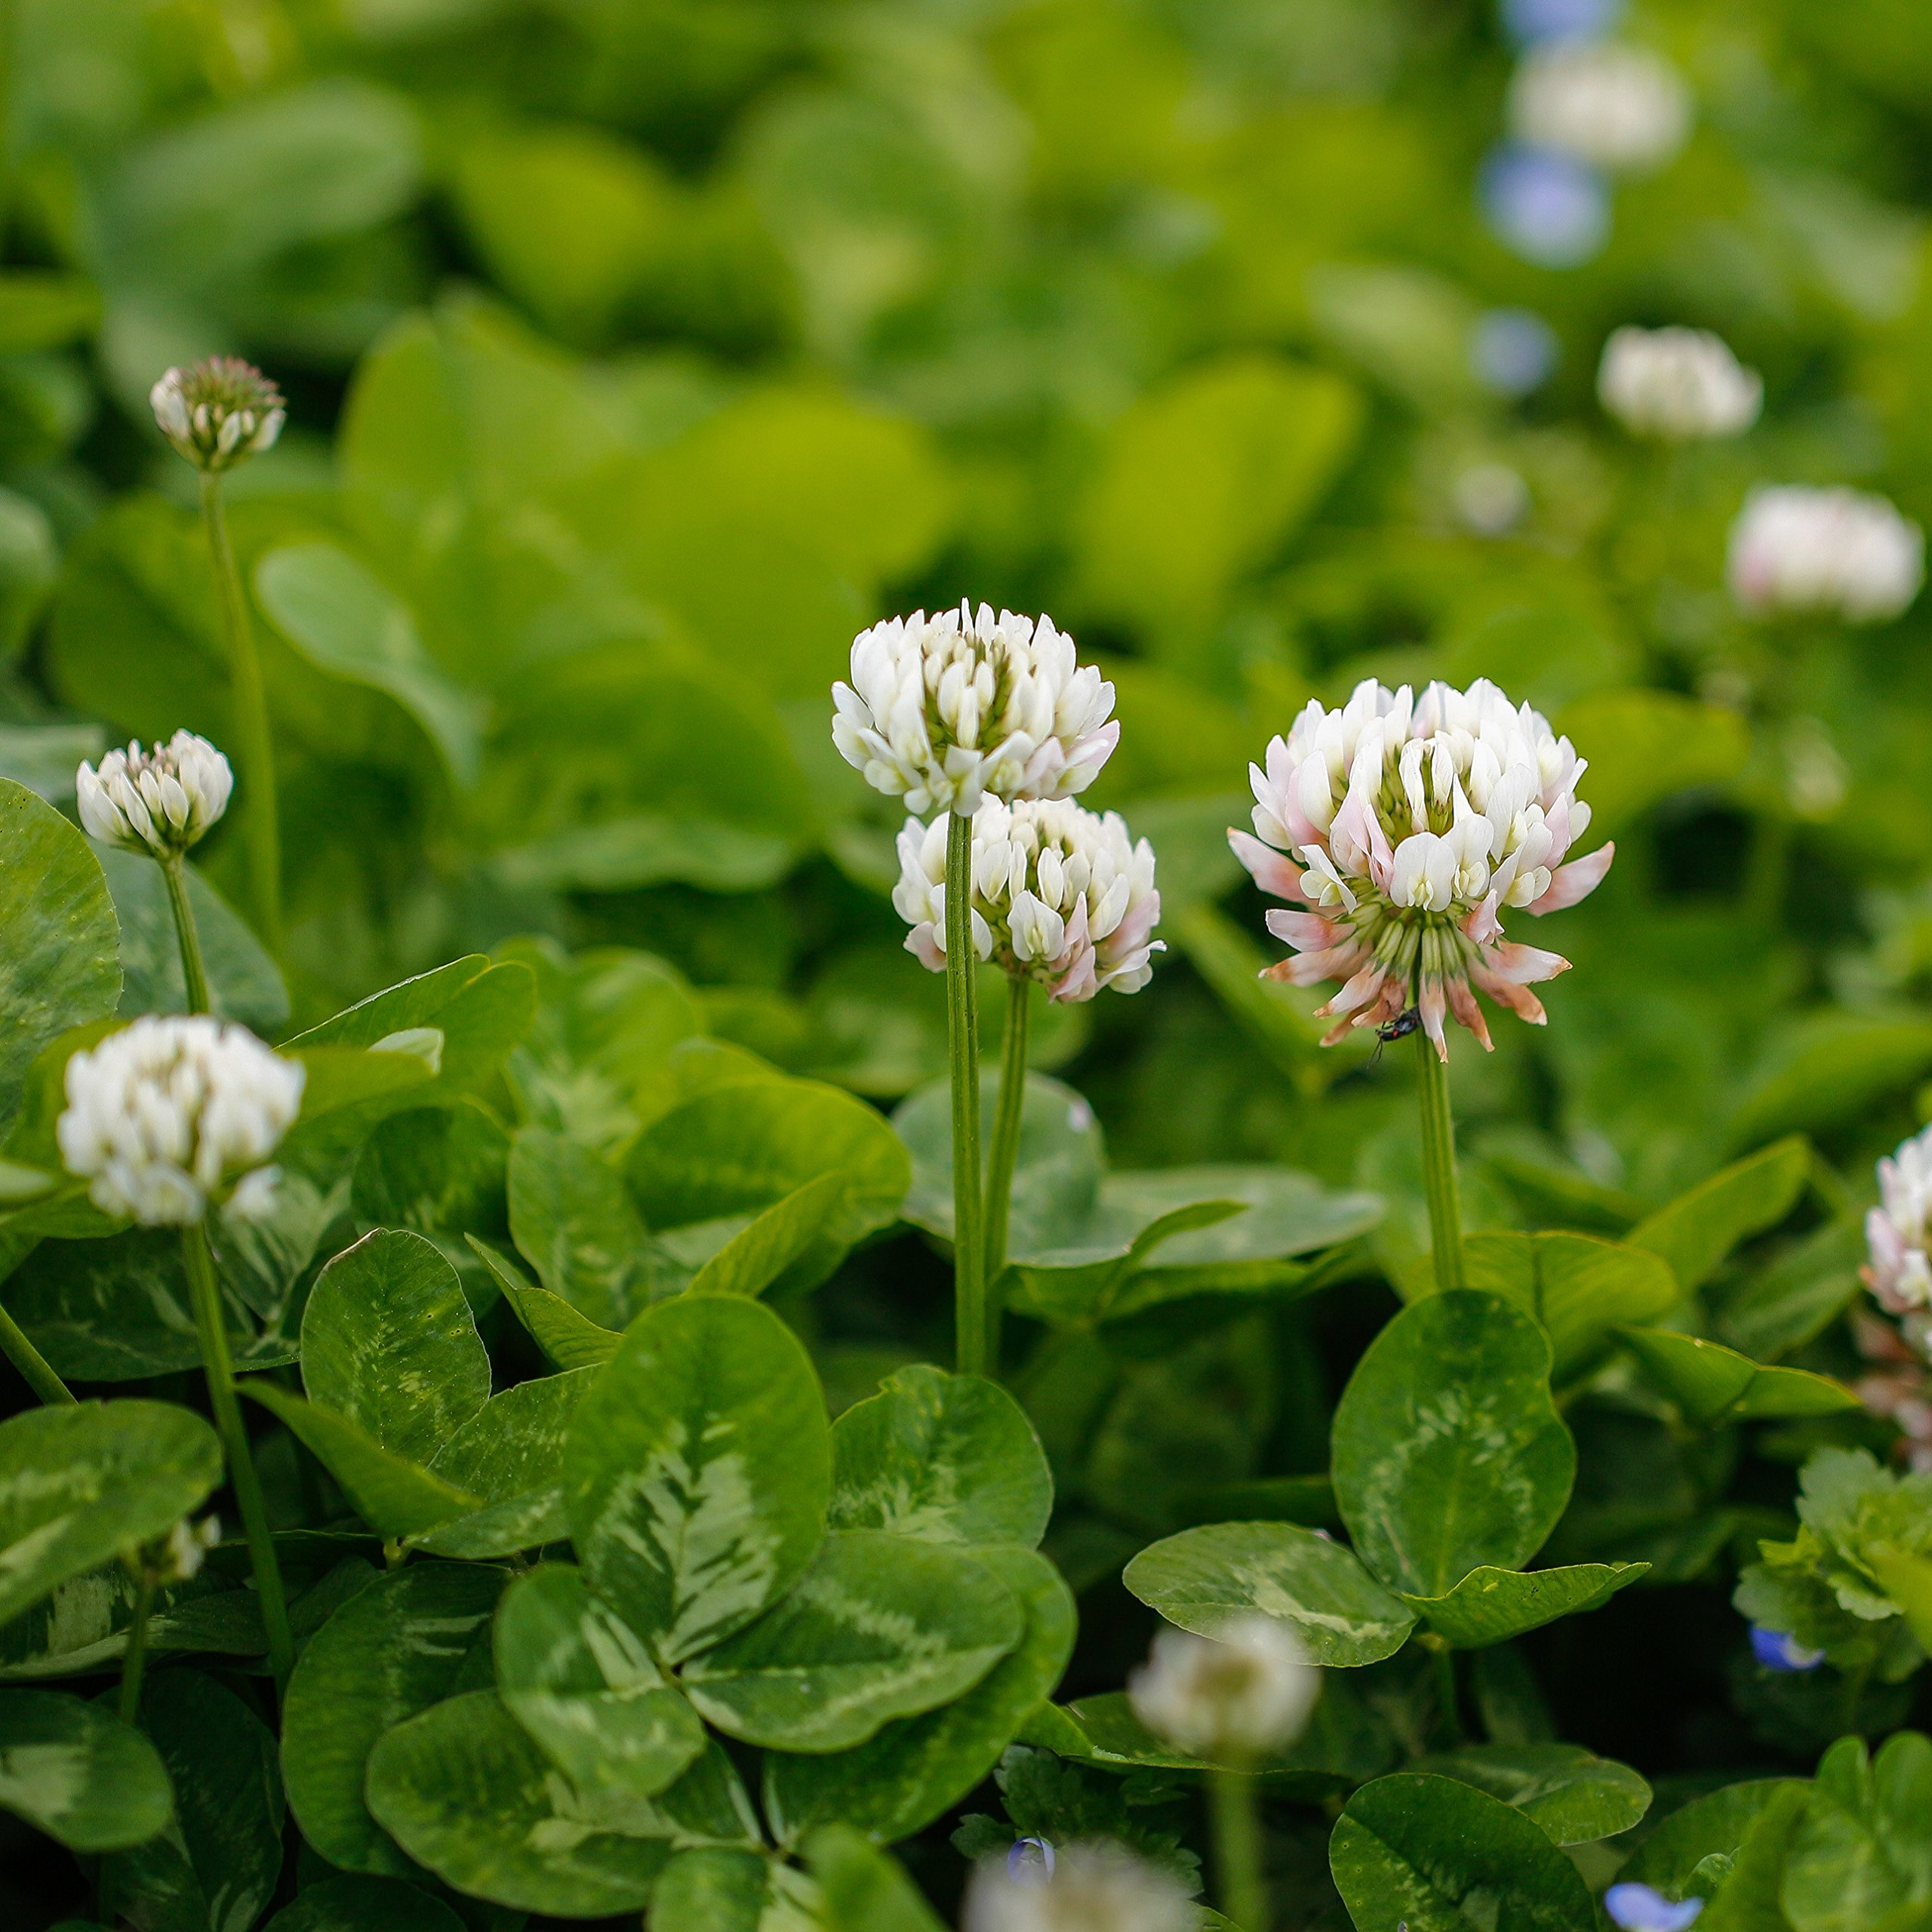 Outsidepride White Dutch Clover Seed: Nitro-Coated, Inoculated - 10 LBS by Outsidepride